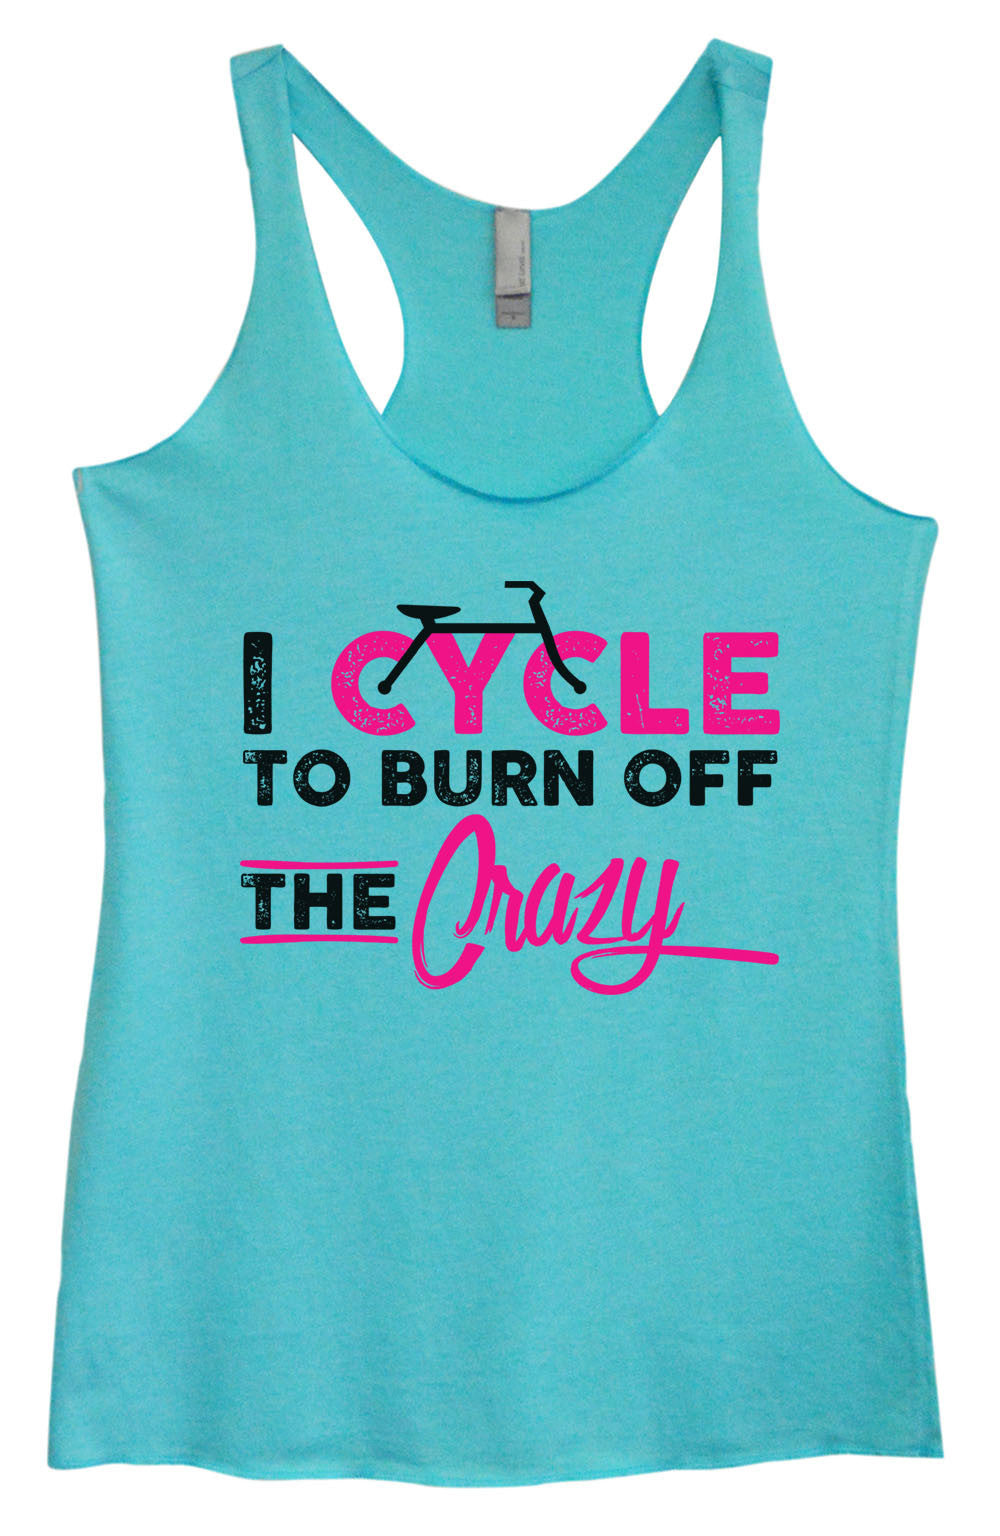 Womens Fashion Triblend Tank Top - I Cycle To Burn Off The Crazy - Tri-1463 - Funny Shirts Tank Tops Burnouts and Triblends  - 3